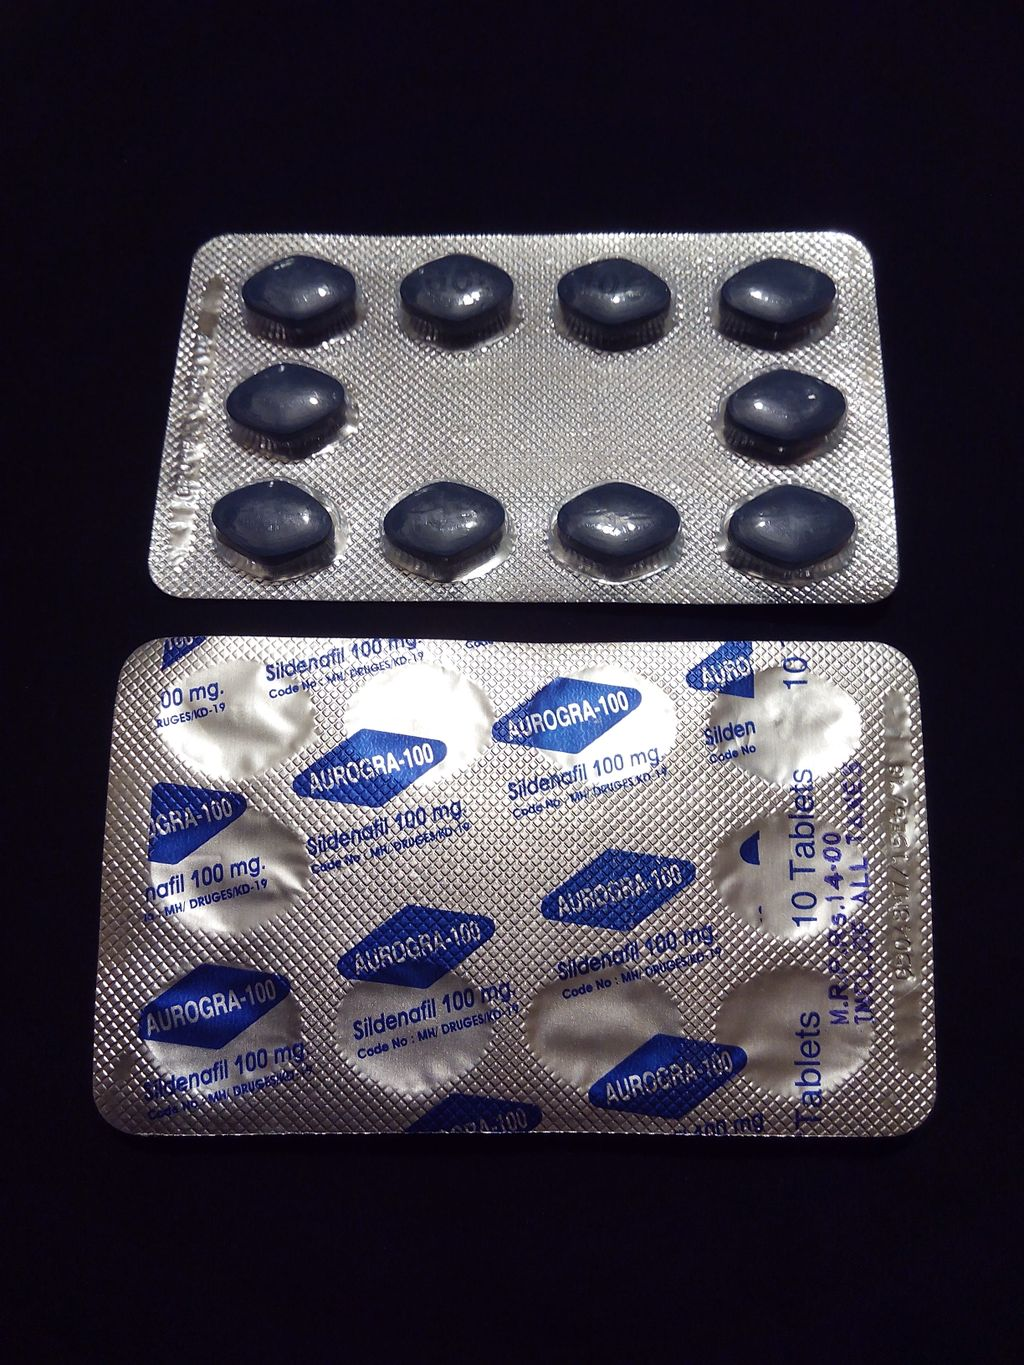 Traitement chlamydia doxycycline